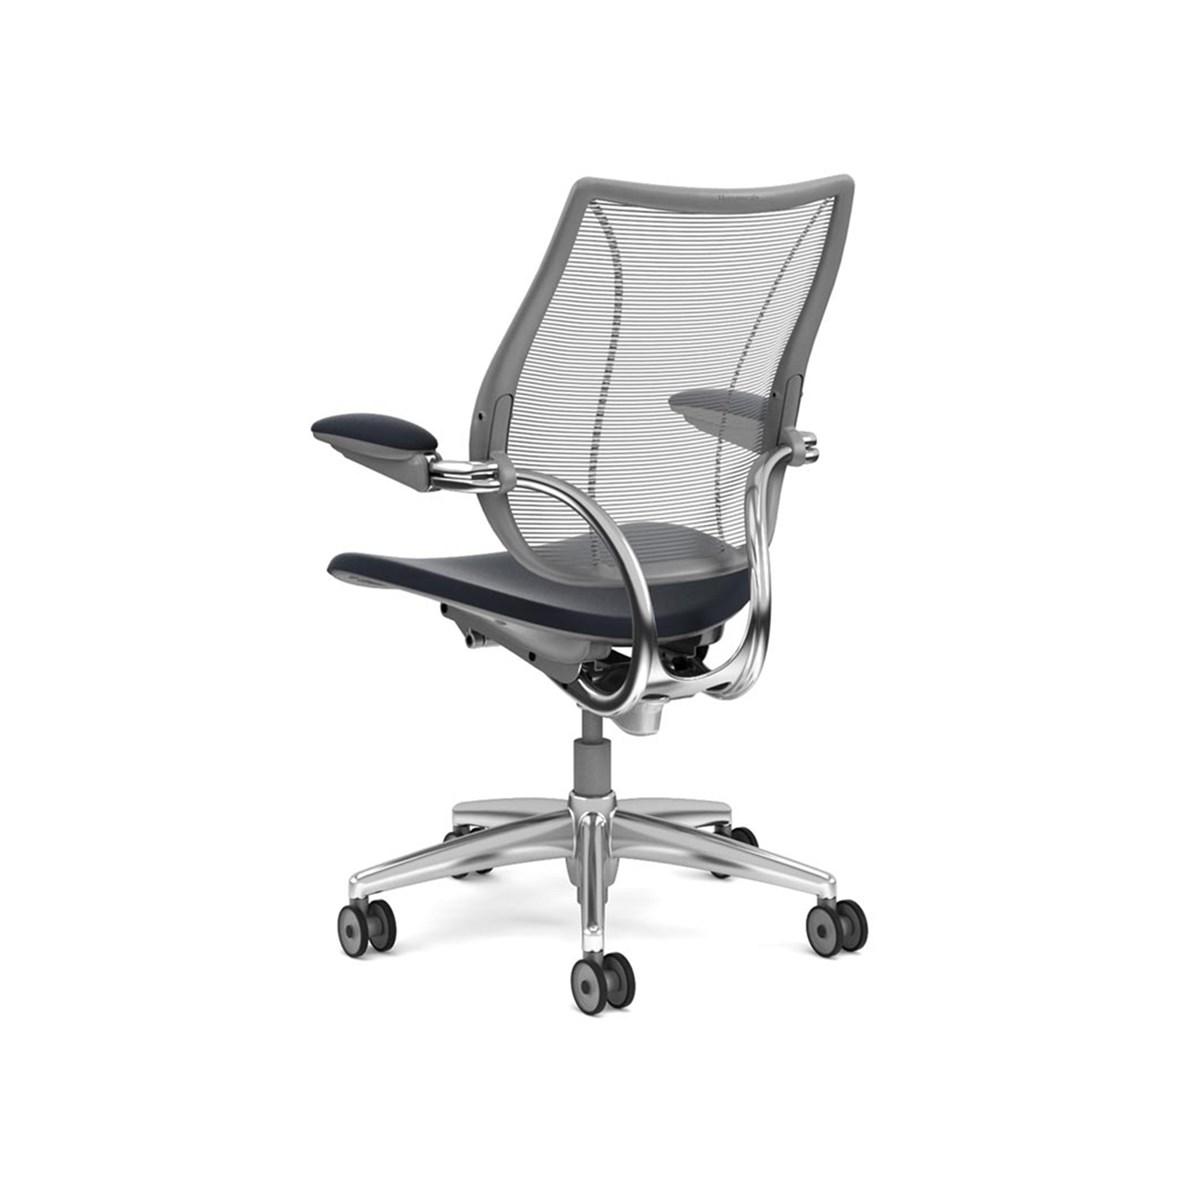 Humanscale-Niels-Diffrient-Liberty-Task-Chair-Matisse-2